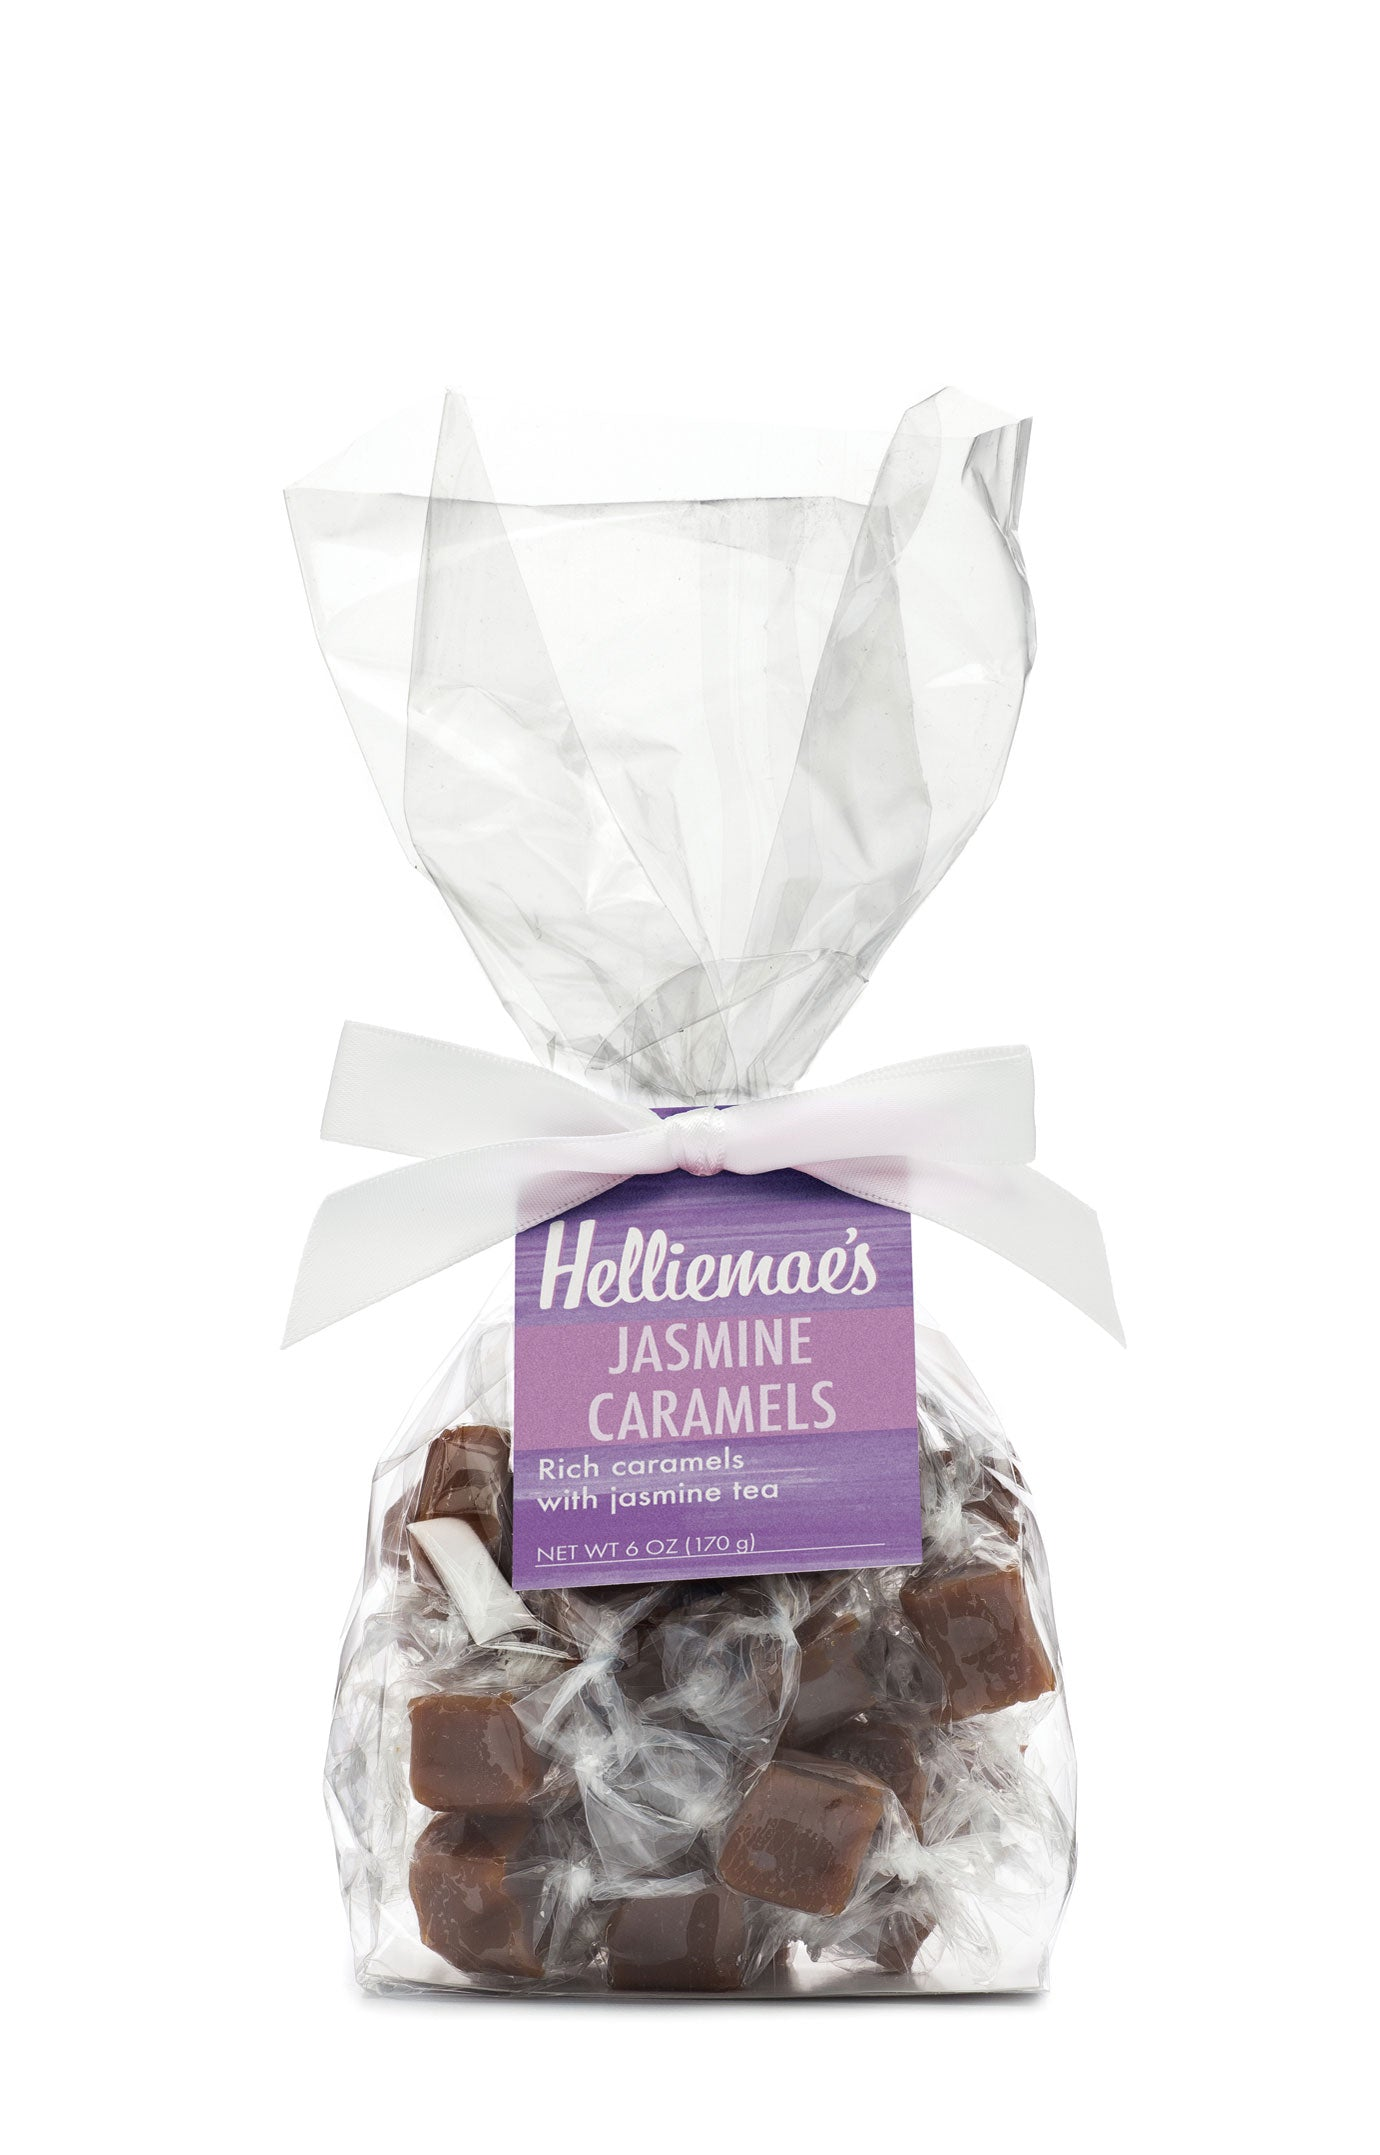 Helliemae's Jasmine Caramels medium gift bag, clear cello bag with gathered top, fastened with white satin ribbon and colorful lavender hangtag, with effect of milk paint on a barn wall.